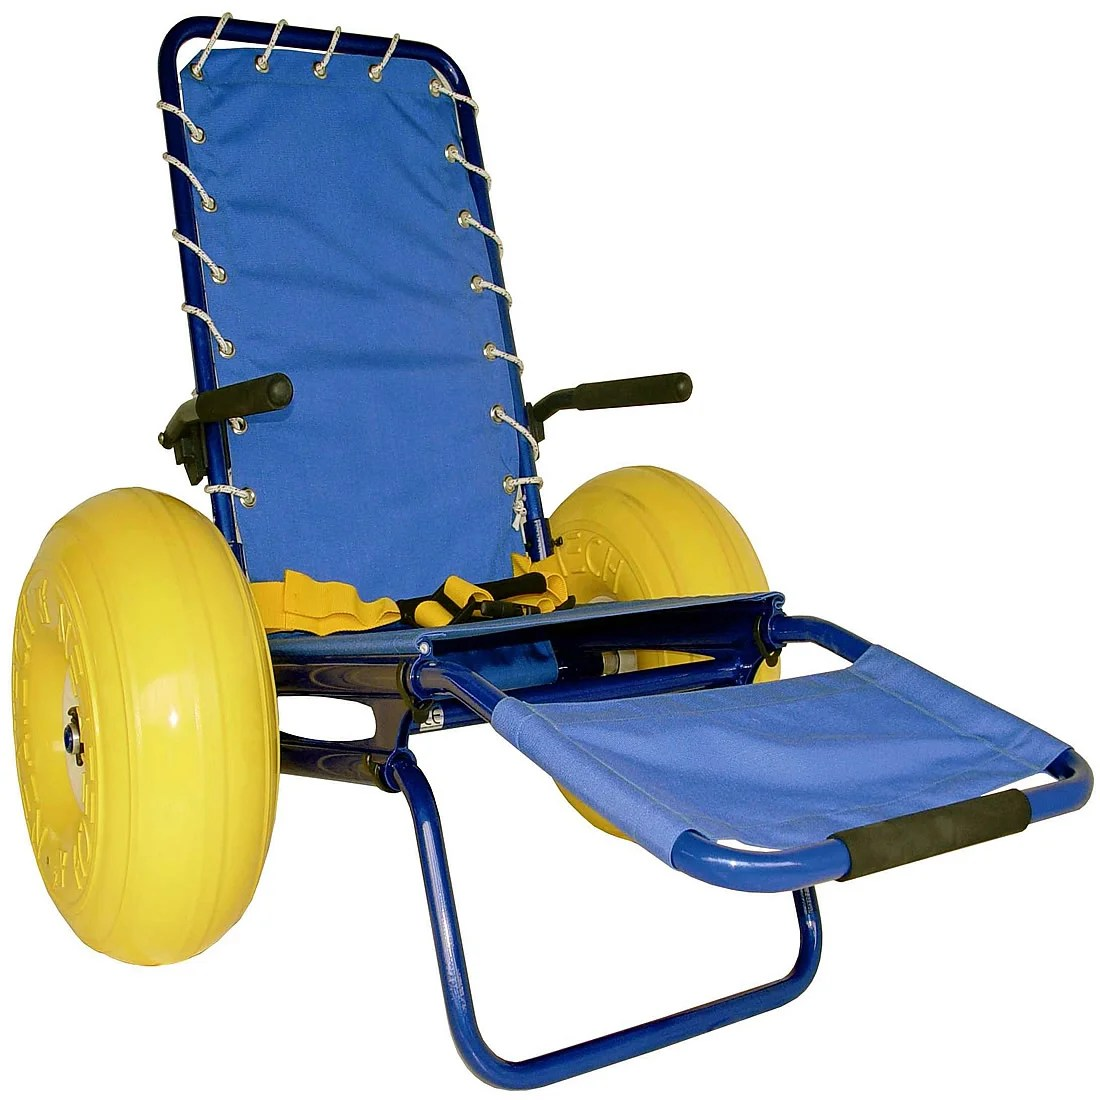 wheel chair on rent in dubai turquoise task sicily handicapped holiday beach wheelchair equipment